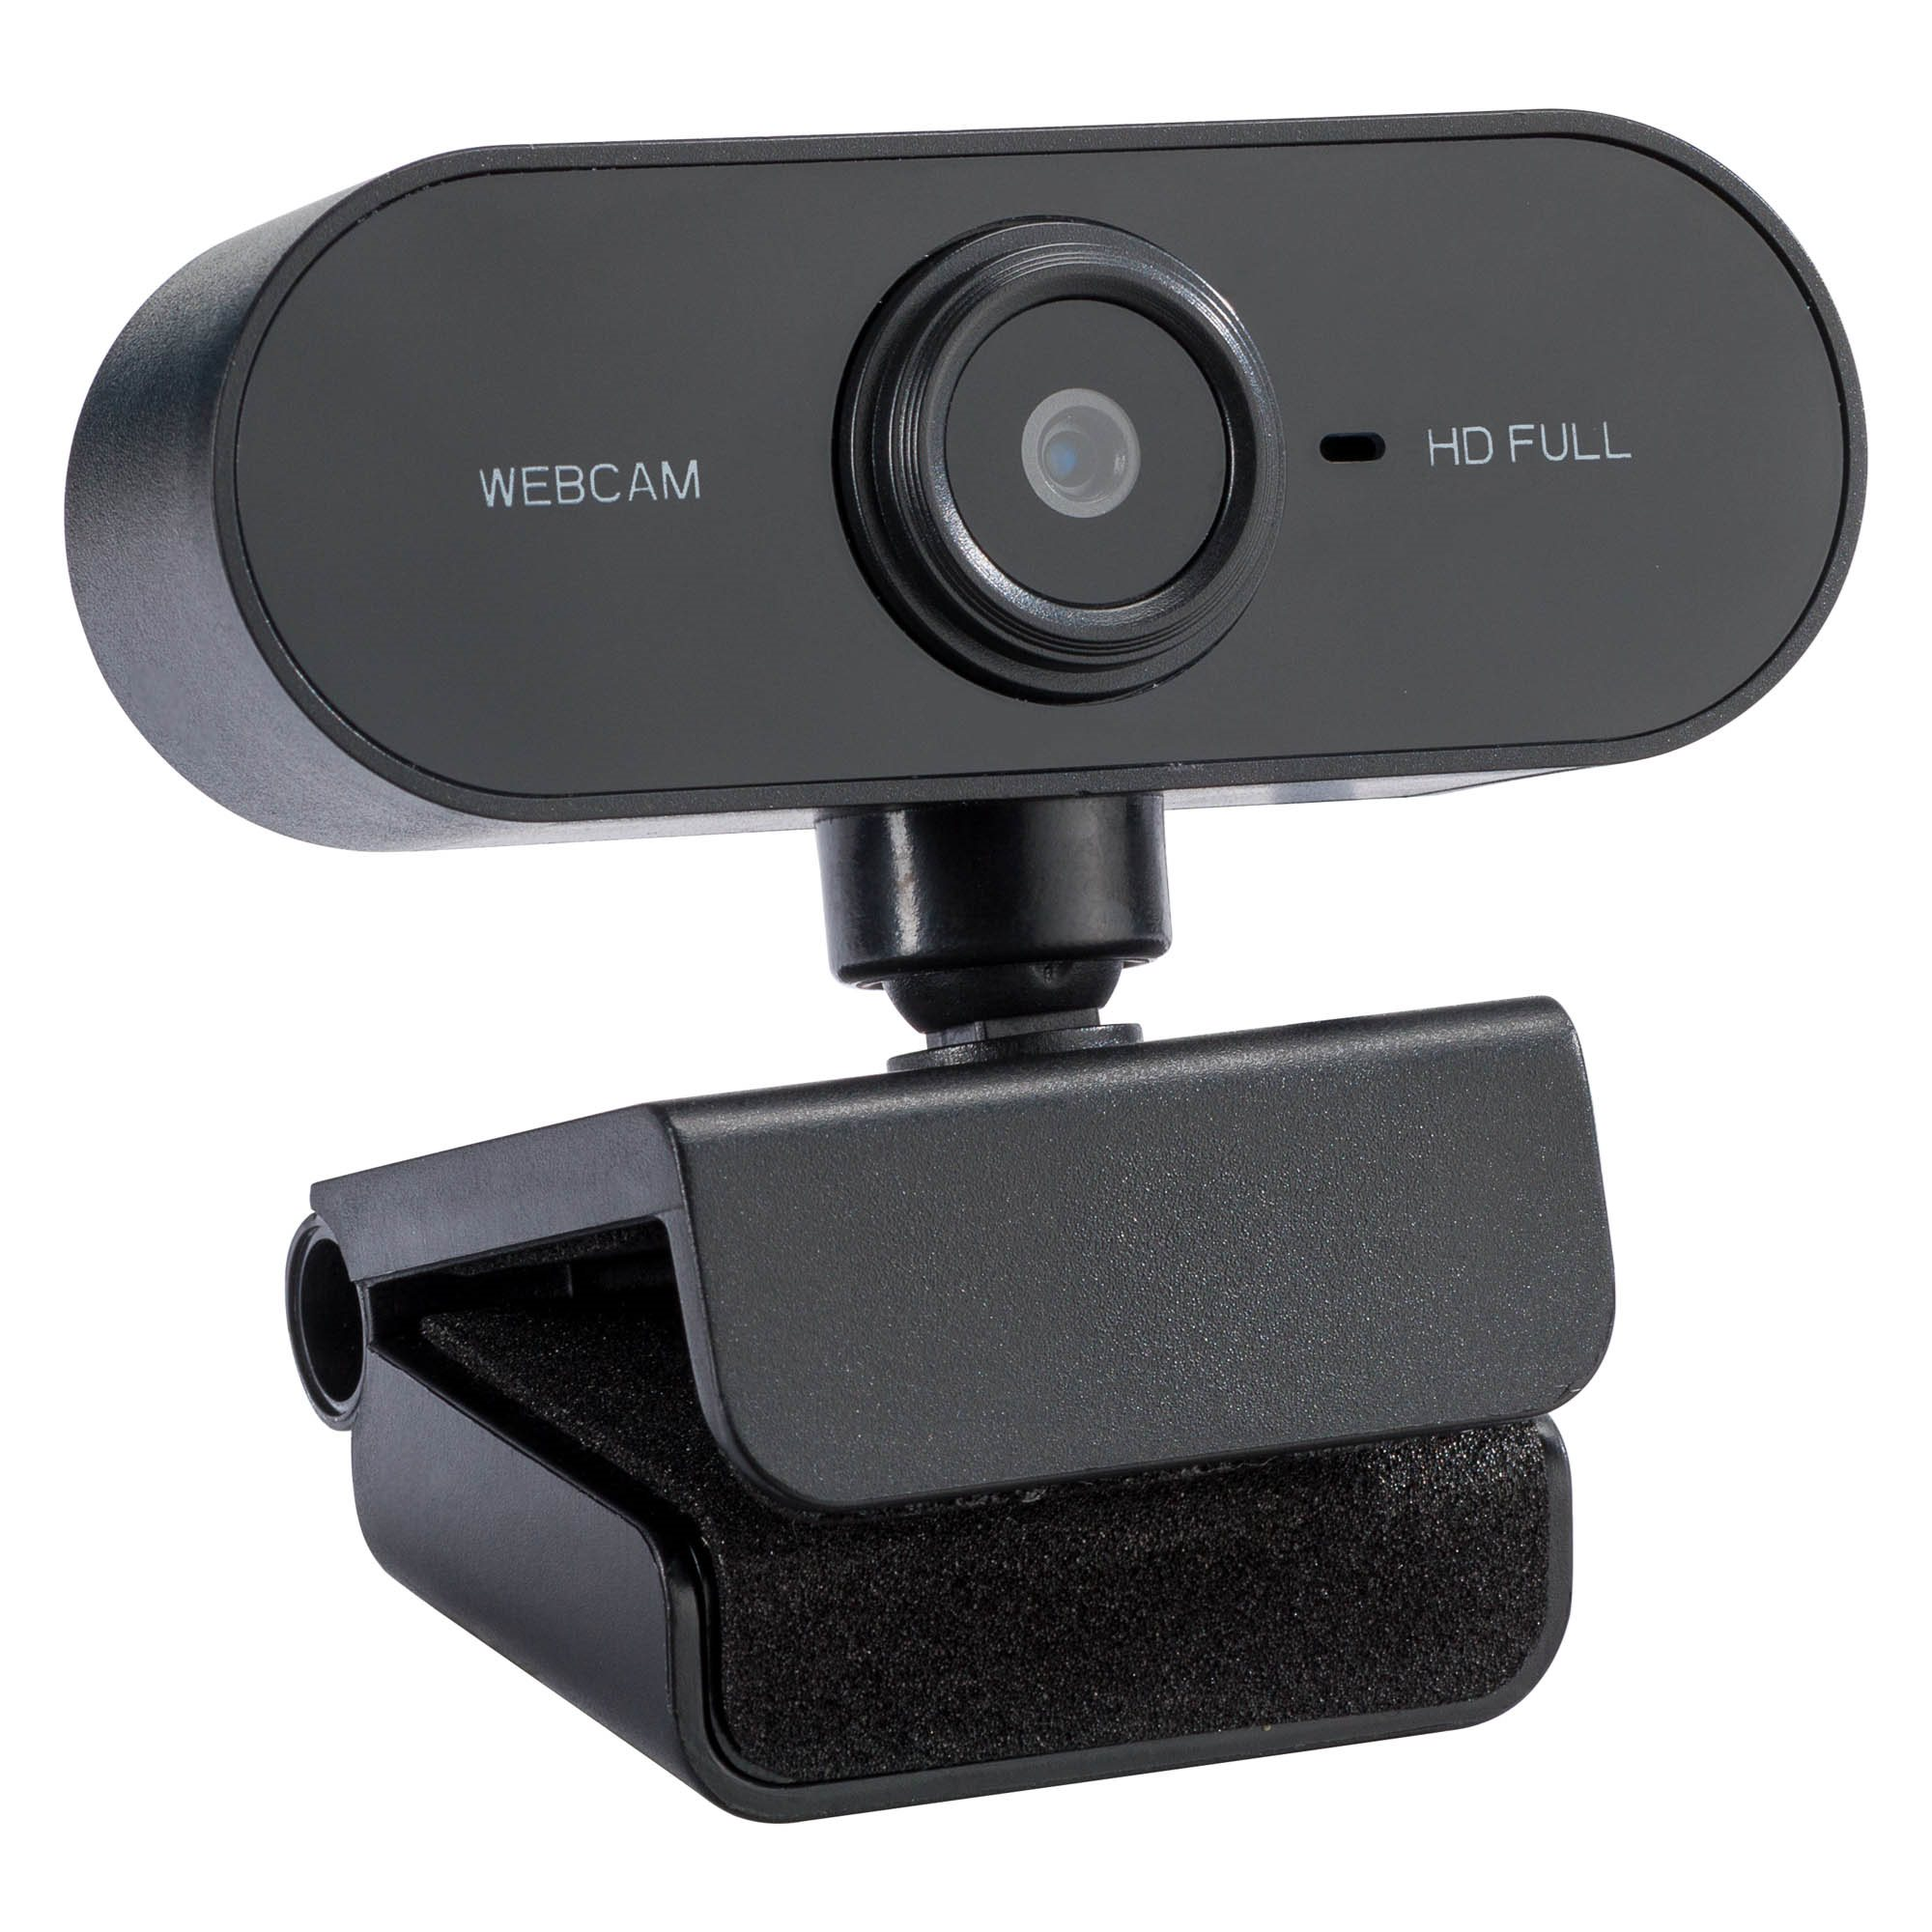 Webcam HD 1080 with microphone USB 2.0